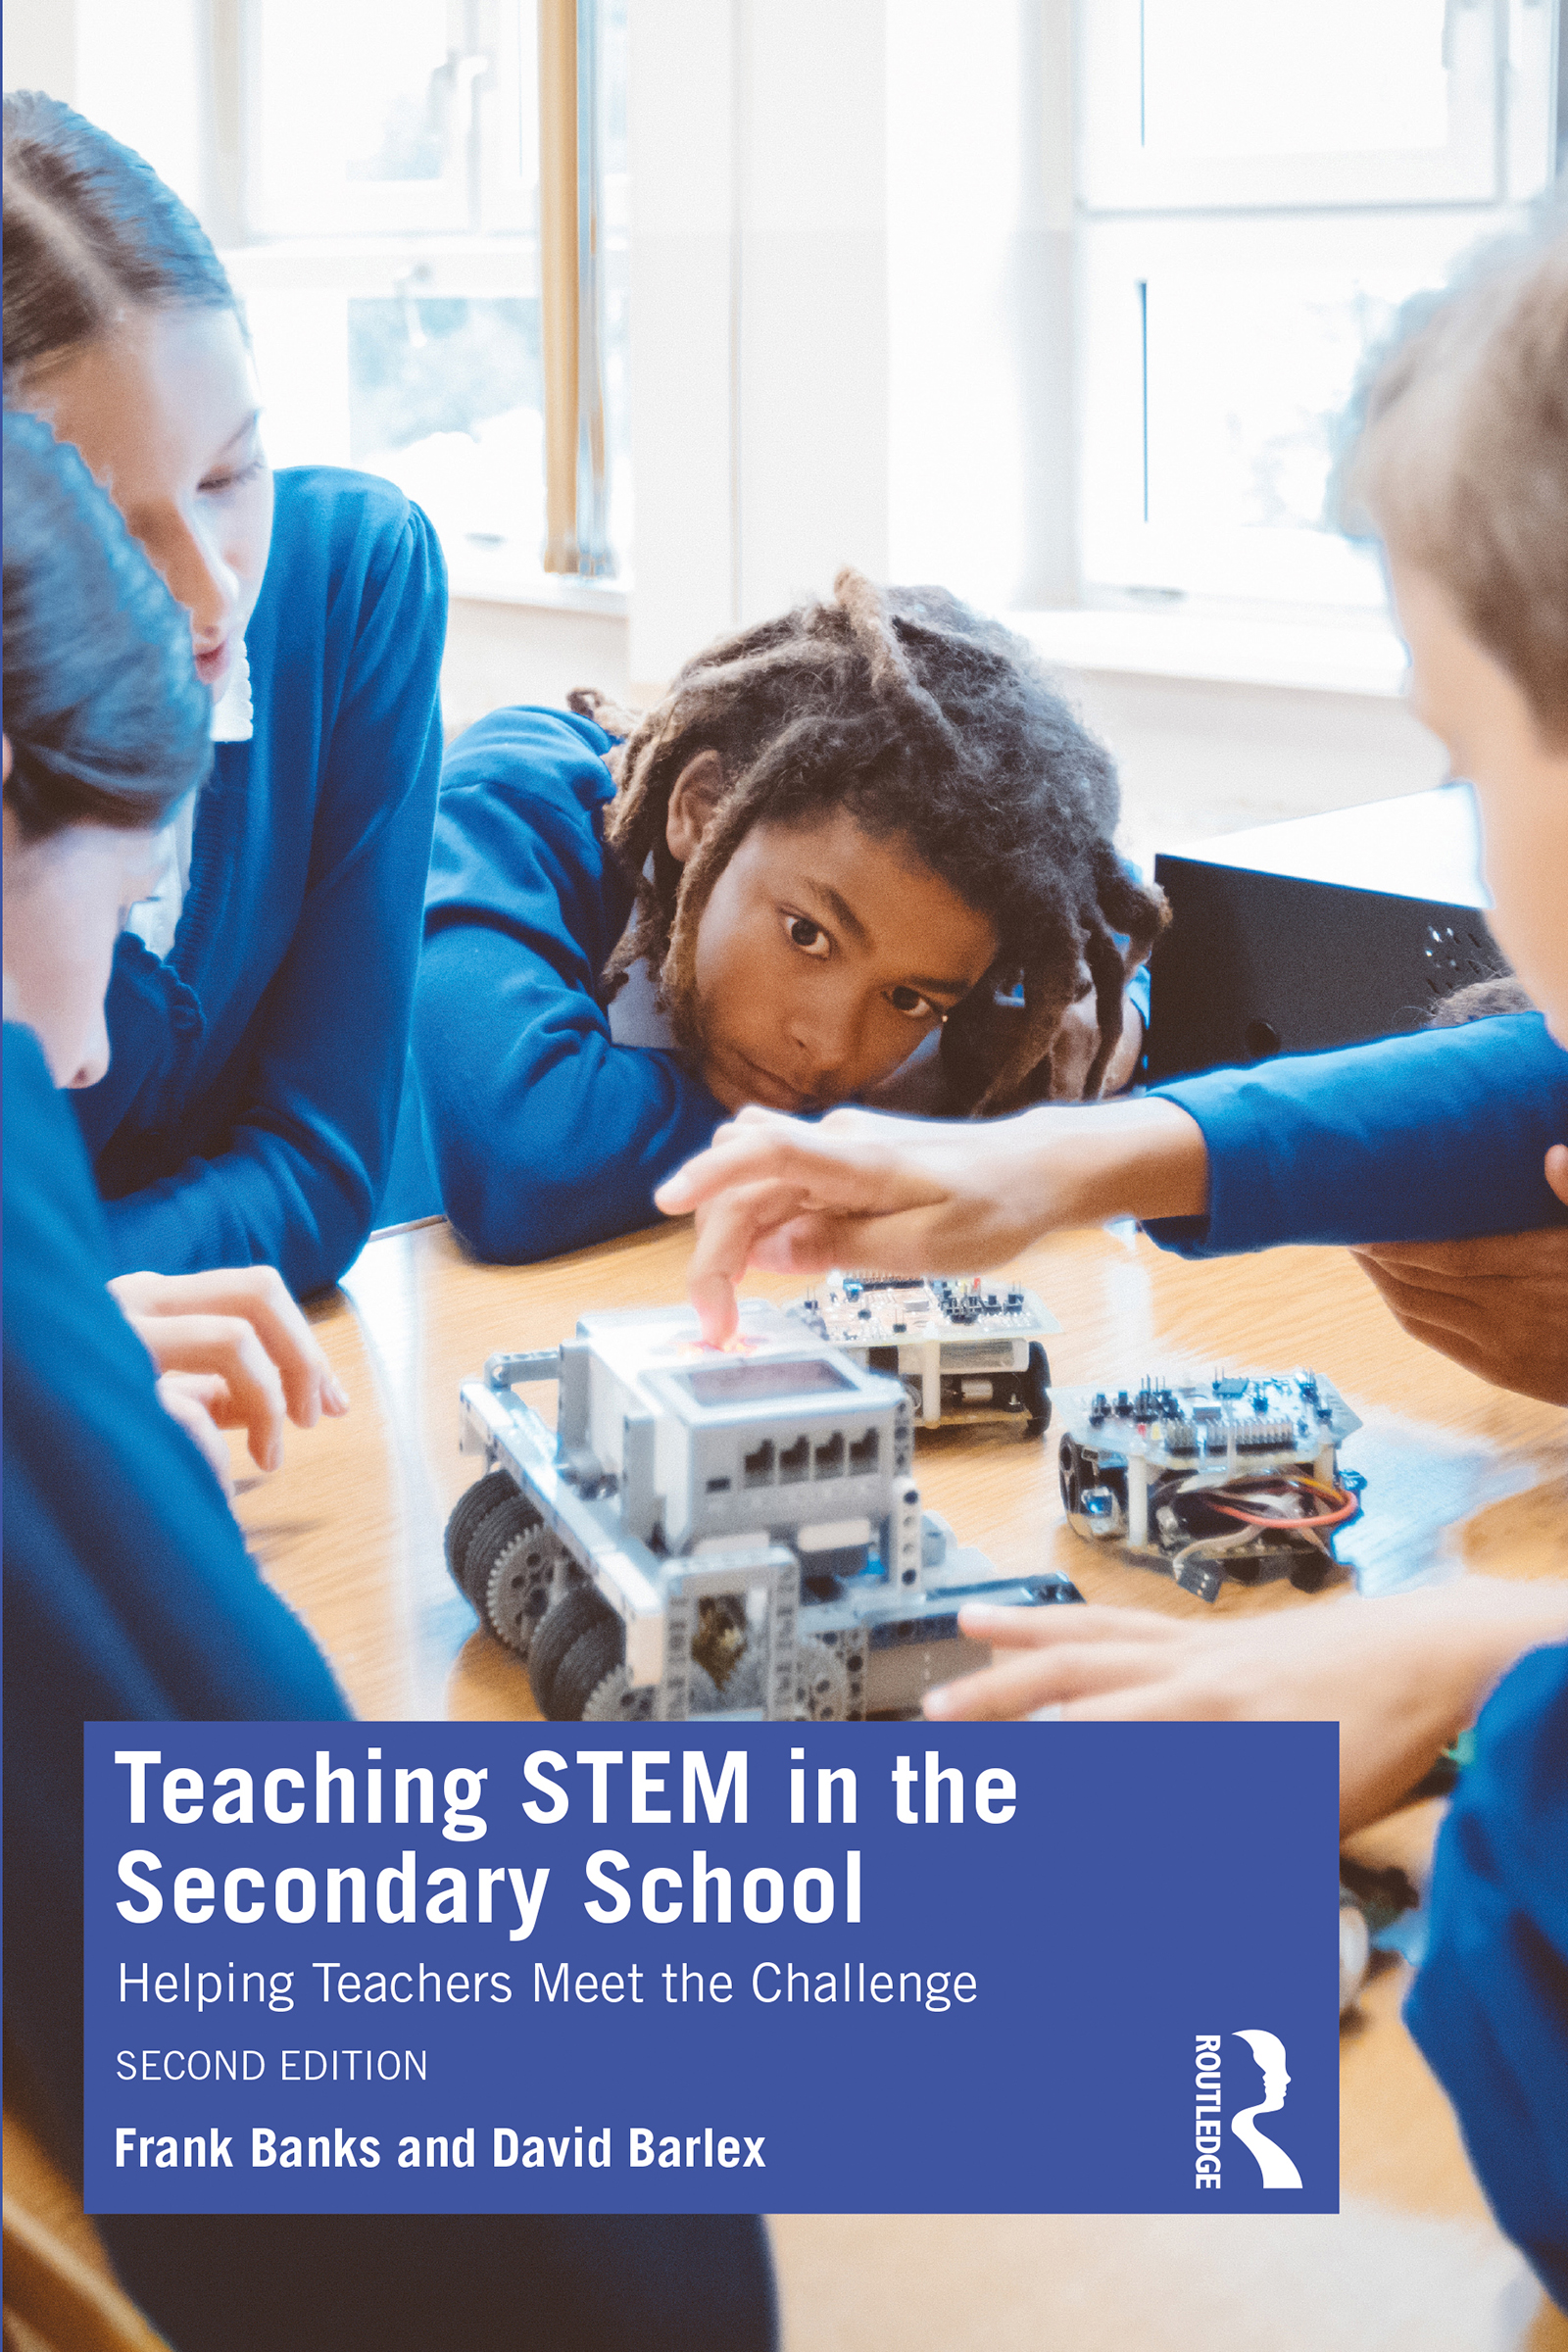 Creating an environment for sustaining STEM